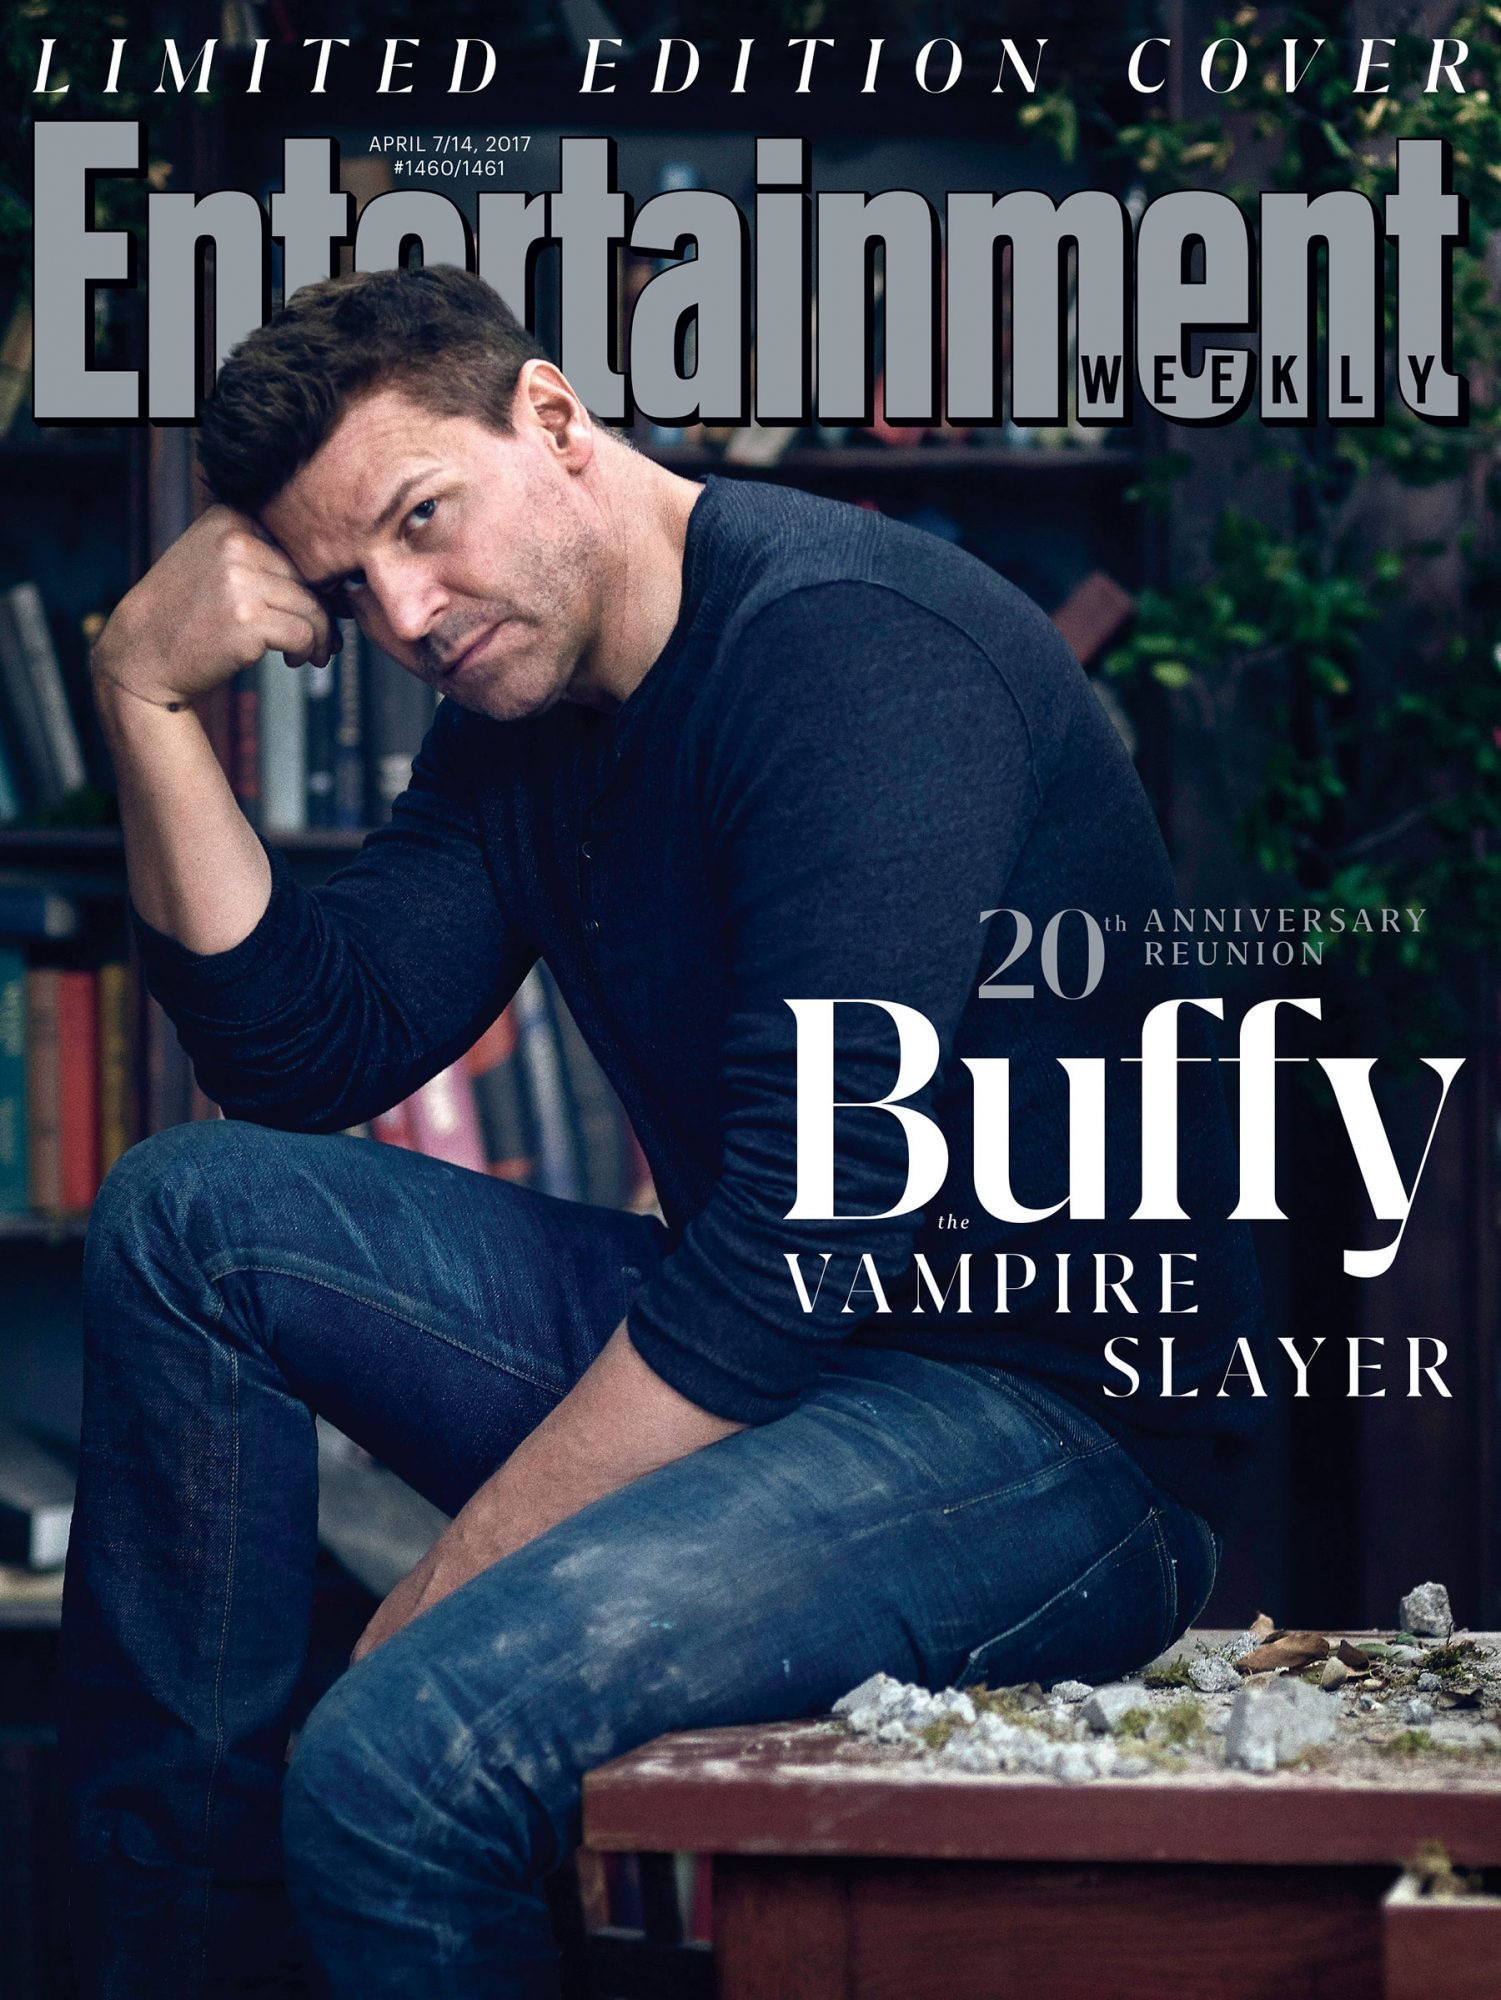 David Boreanaz on the Cover of EW